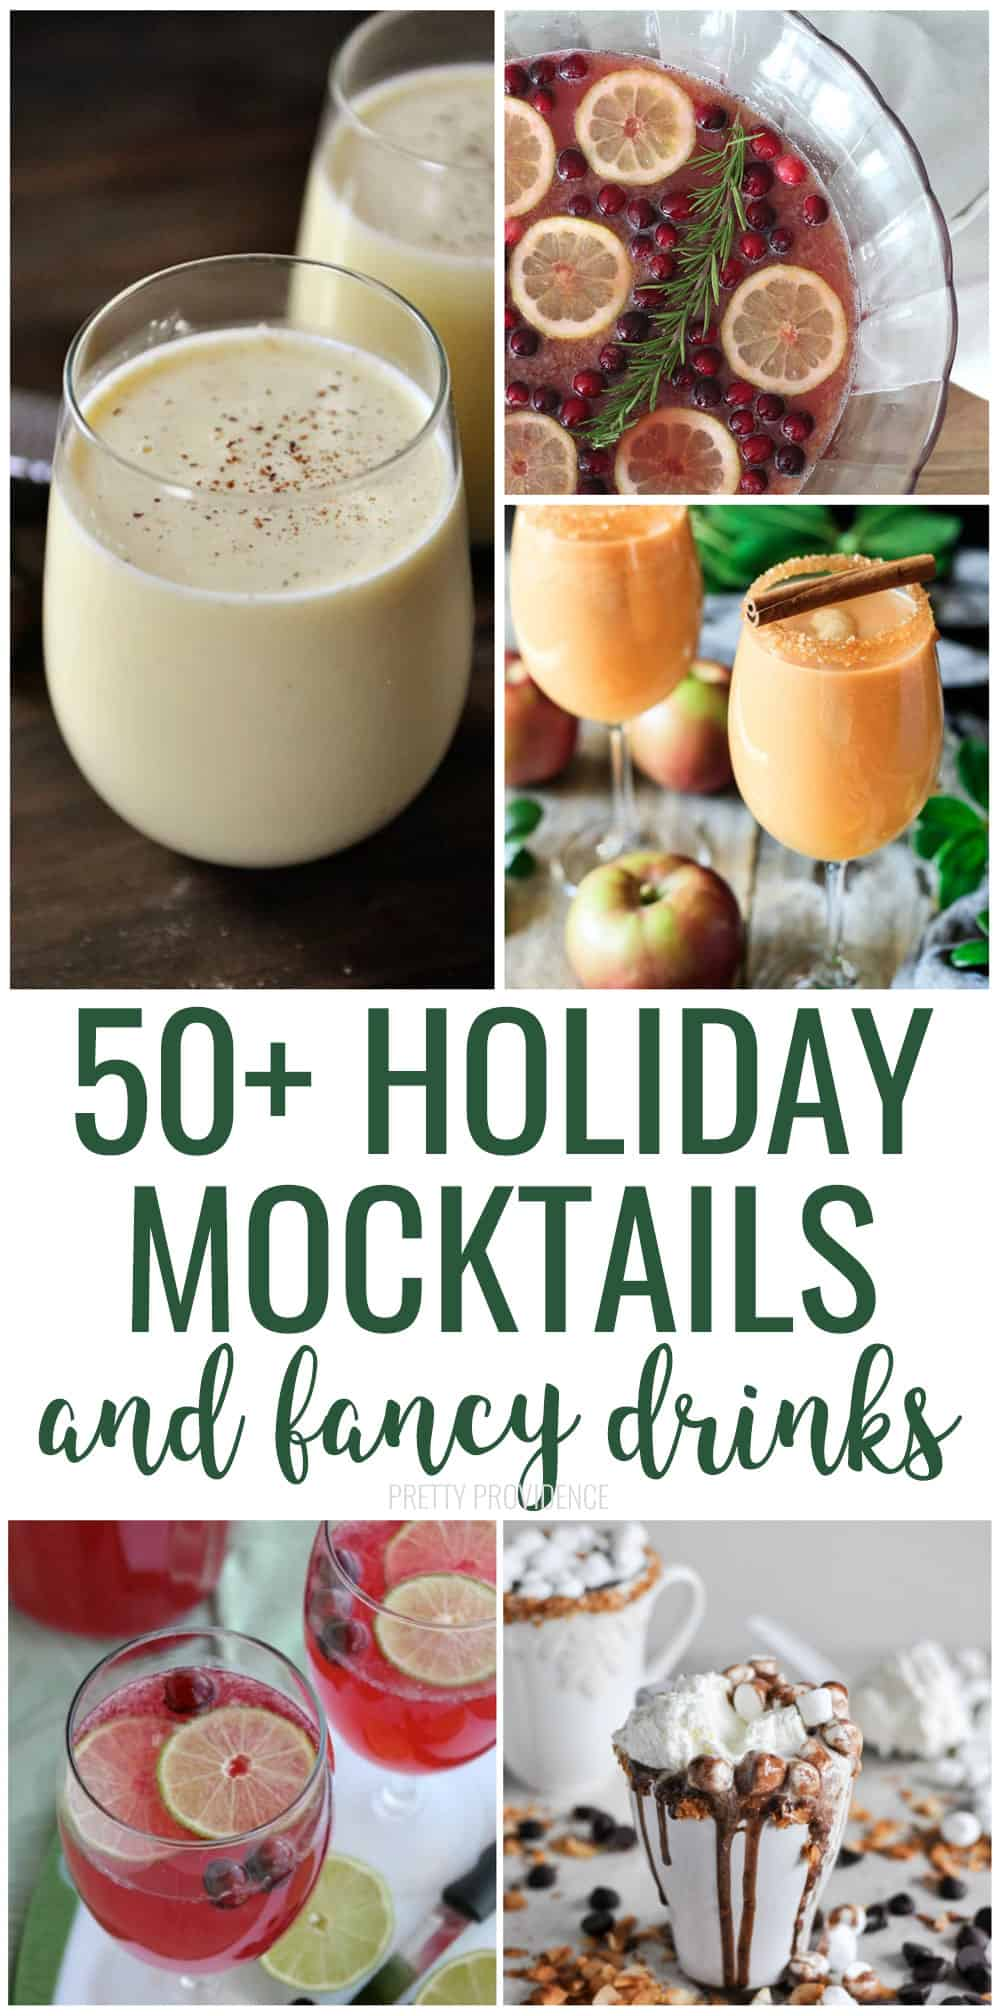 Delicious Mocktails and Fancy Holiday Drinks - all non-alcoholic! Fancy punch, homemade sparkling cider recipes and all kinds of hot chocolate! #mocktail #mocktailrecipe #drinkrecipe #nonalcoholic #christmas #christmasparty #punch #holidayrecipes #christmasrecipes